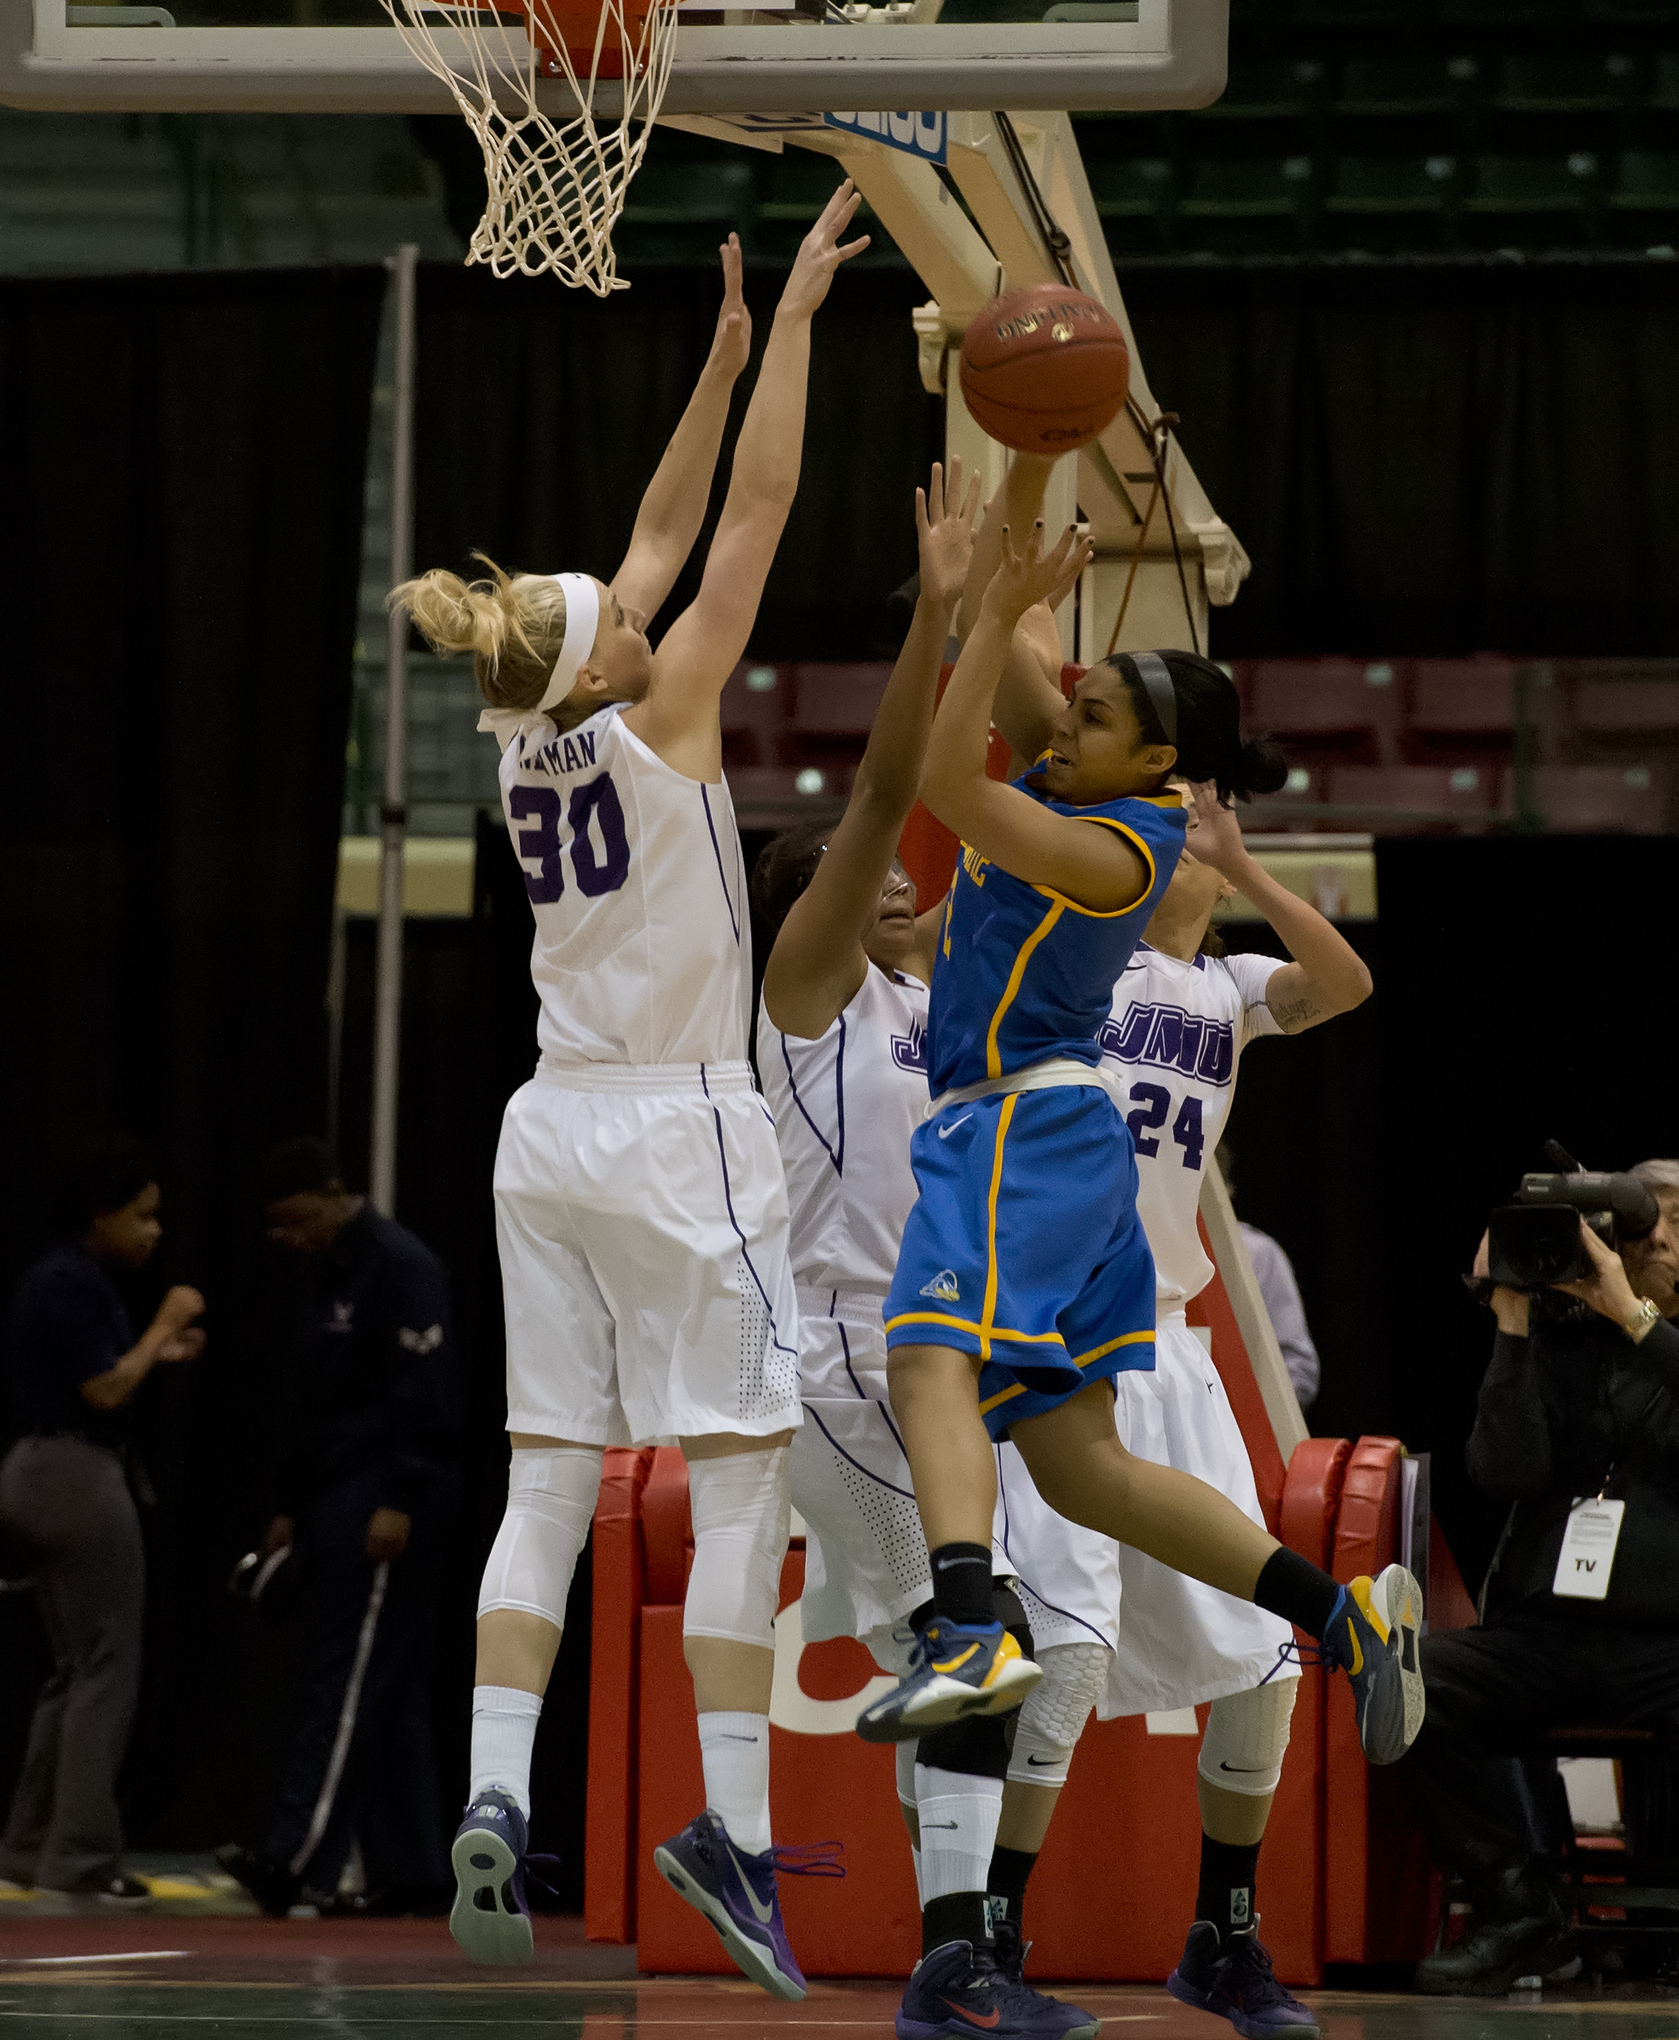 CAA Defensive Player of the Year Nikki Newman blogs about